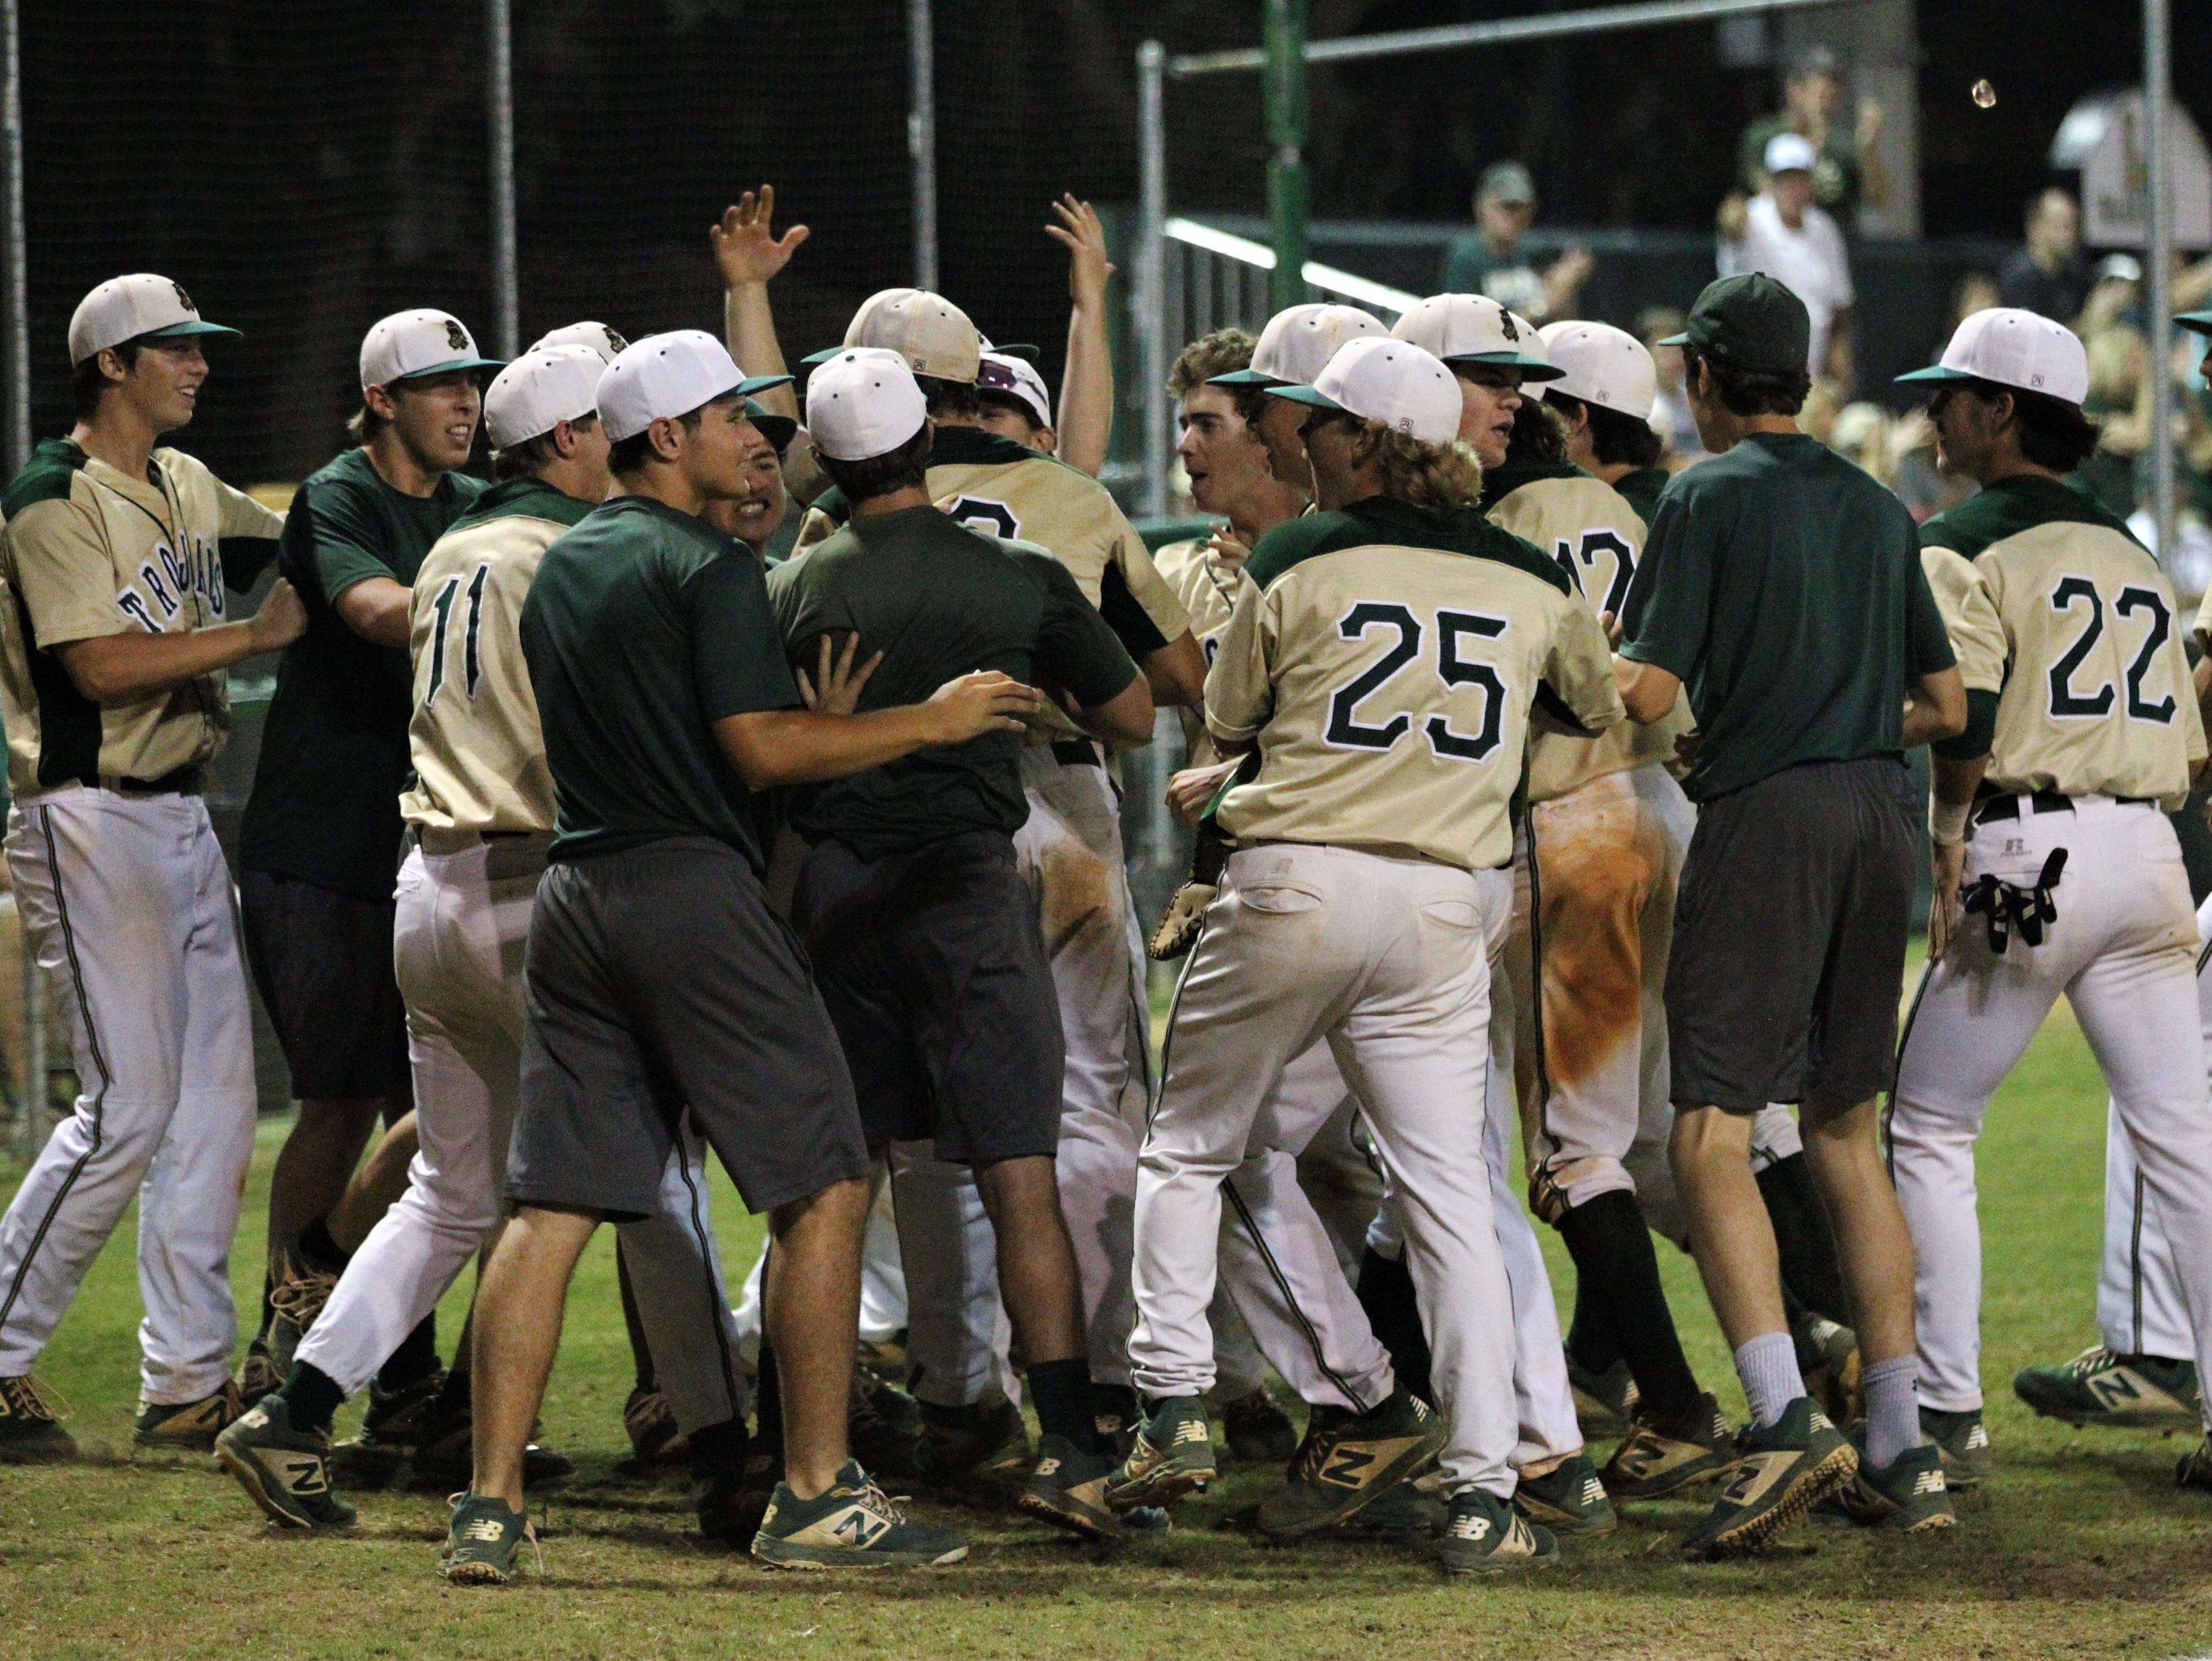 Lincoln players react after getting out of an inning as Lincoln baseball beat Chiles 5-4  in 10 innings during a District 2-8A championship game on Thursday, May 9, 2019.